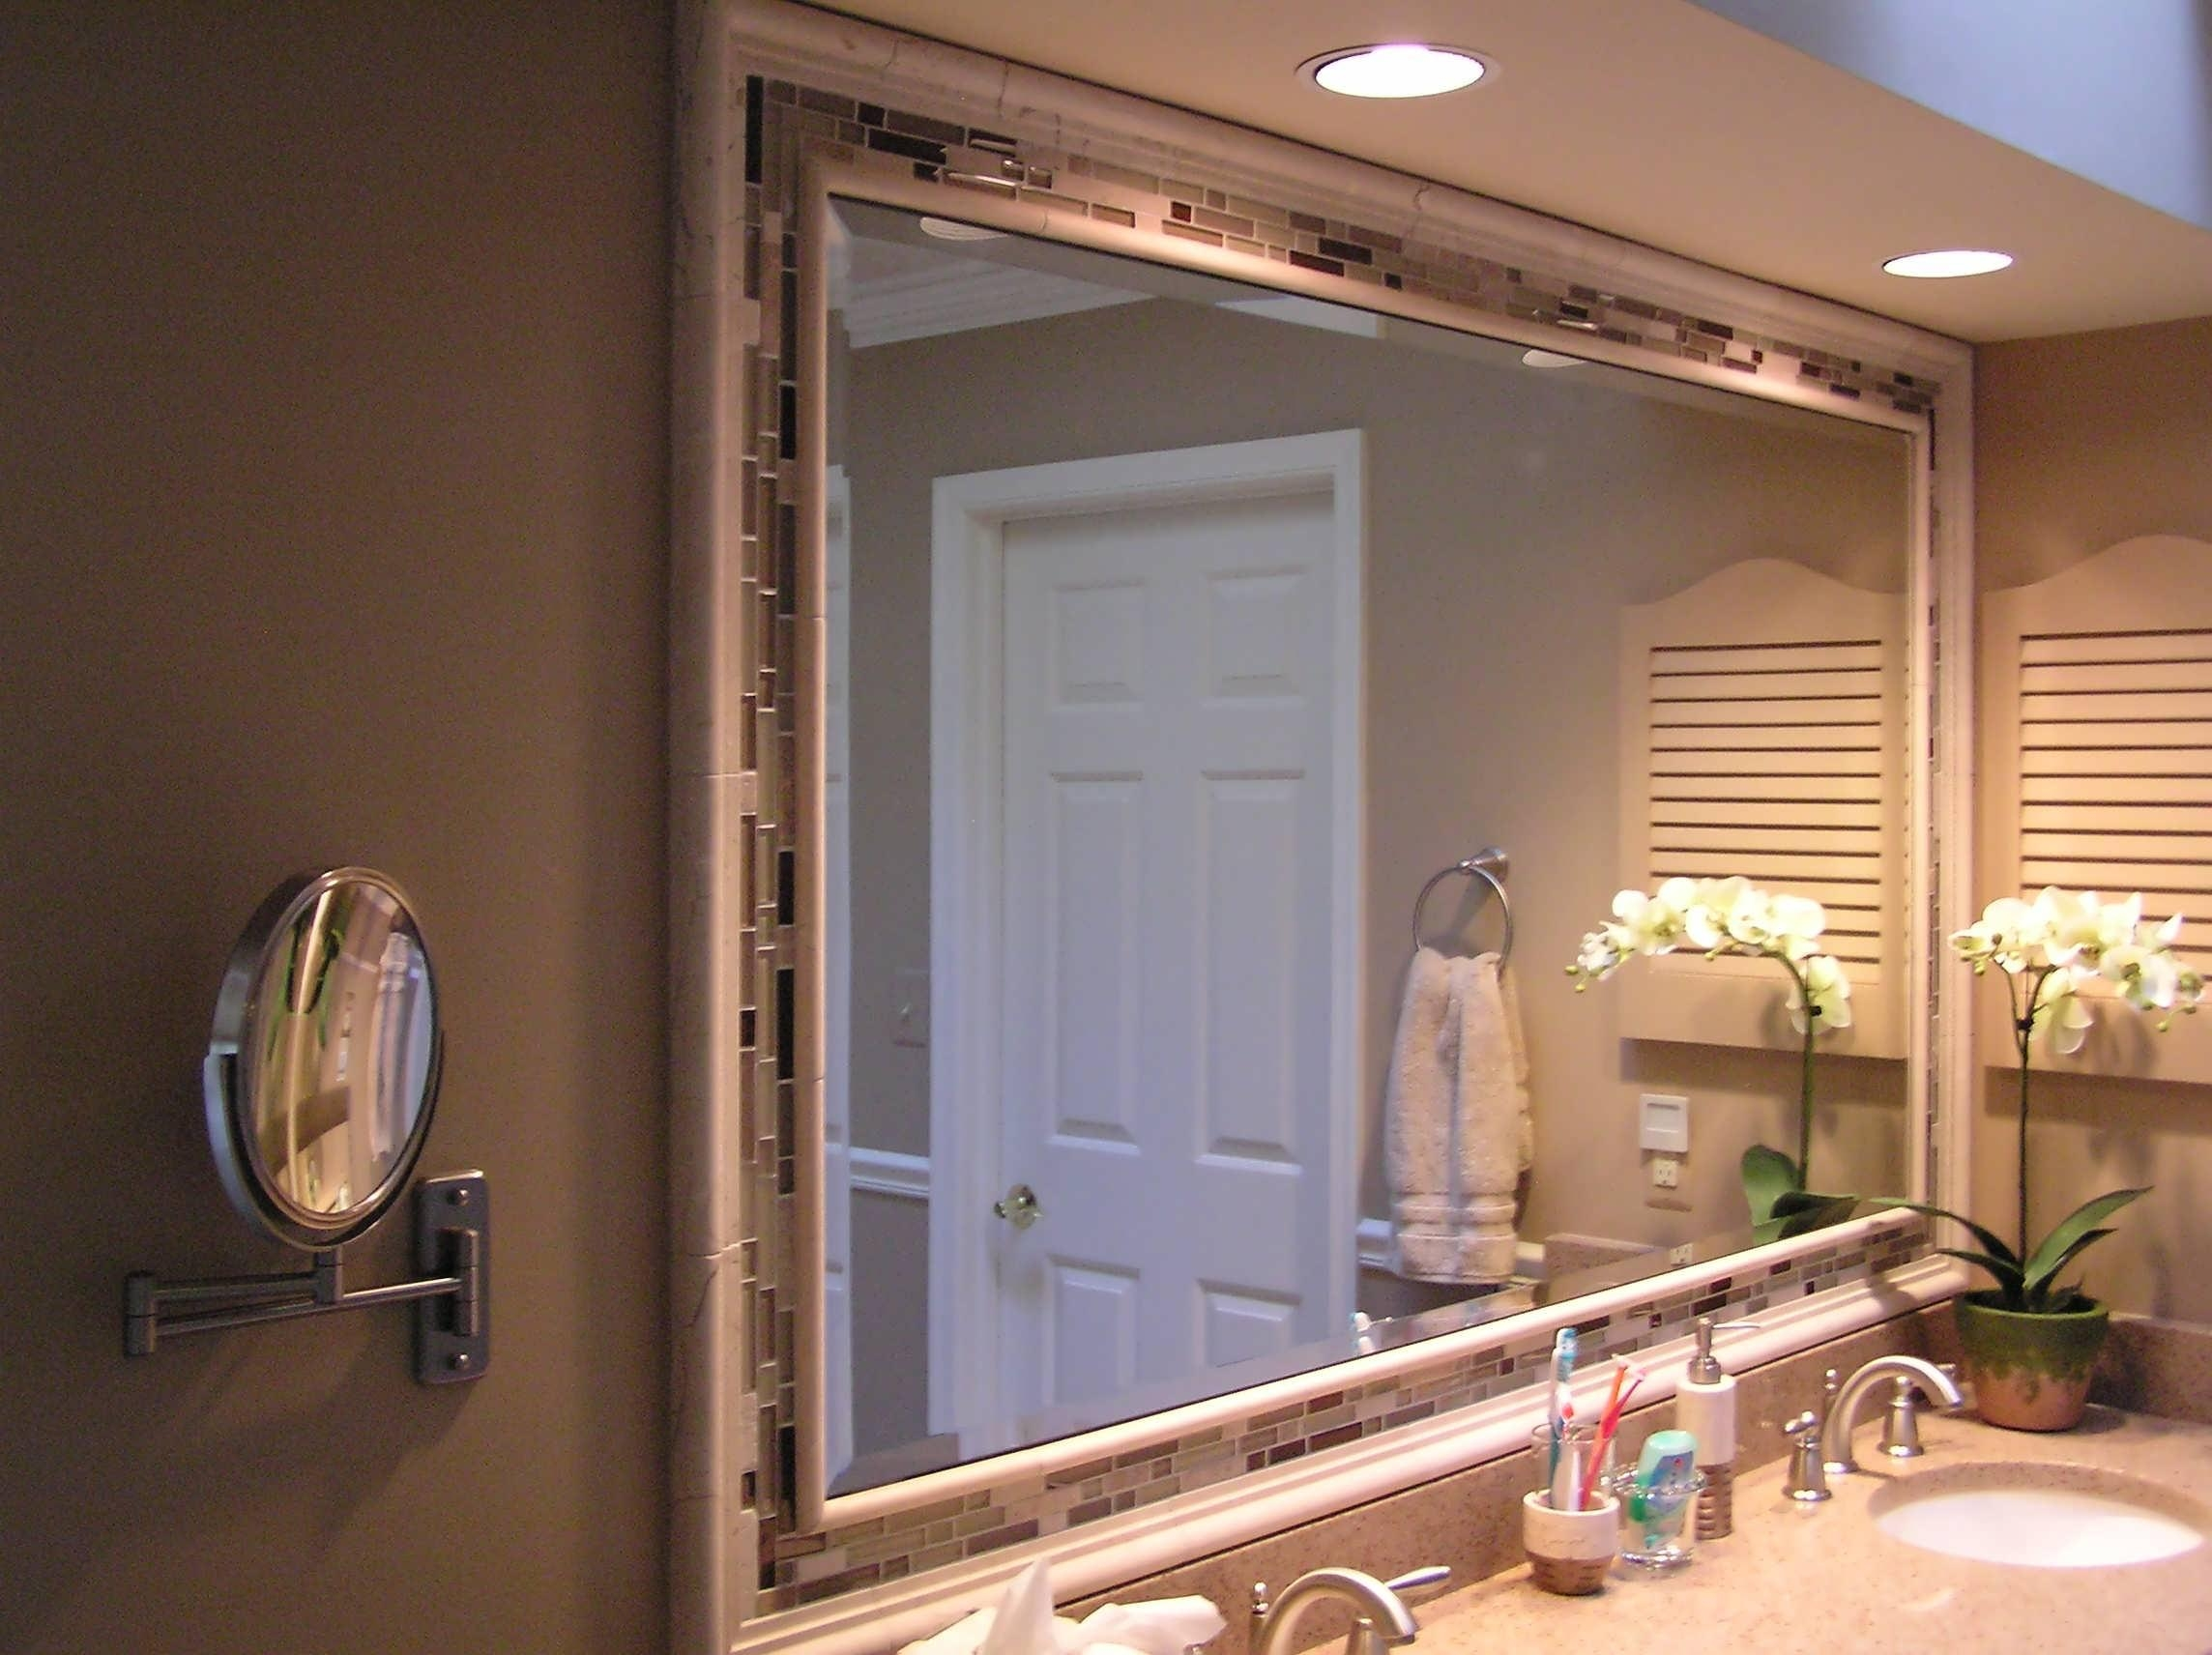 20 Inspirations Large Framed Bathroom Wall Mirrors Mirror Ideas